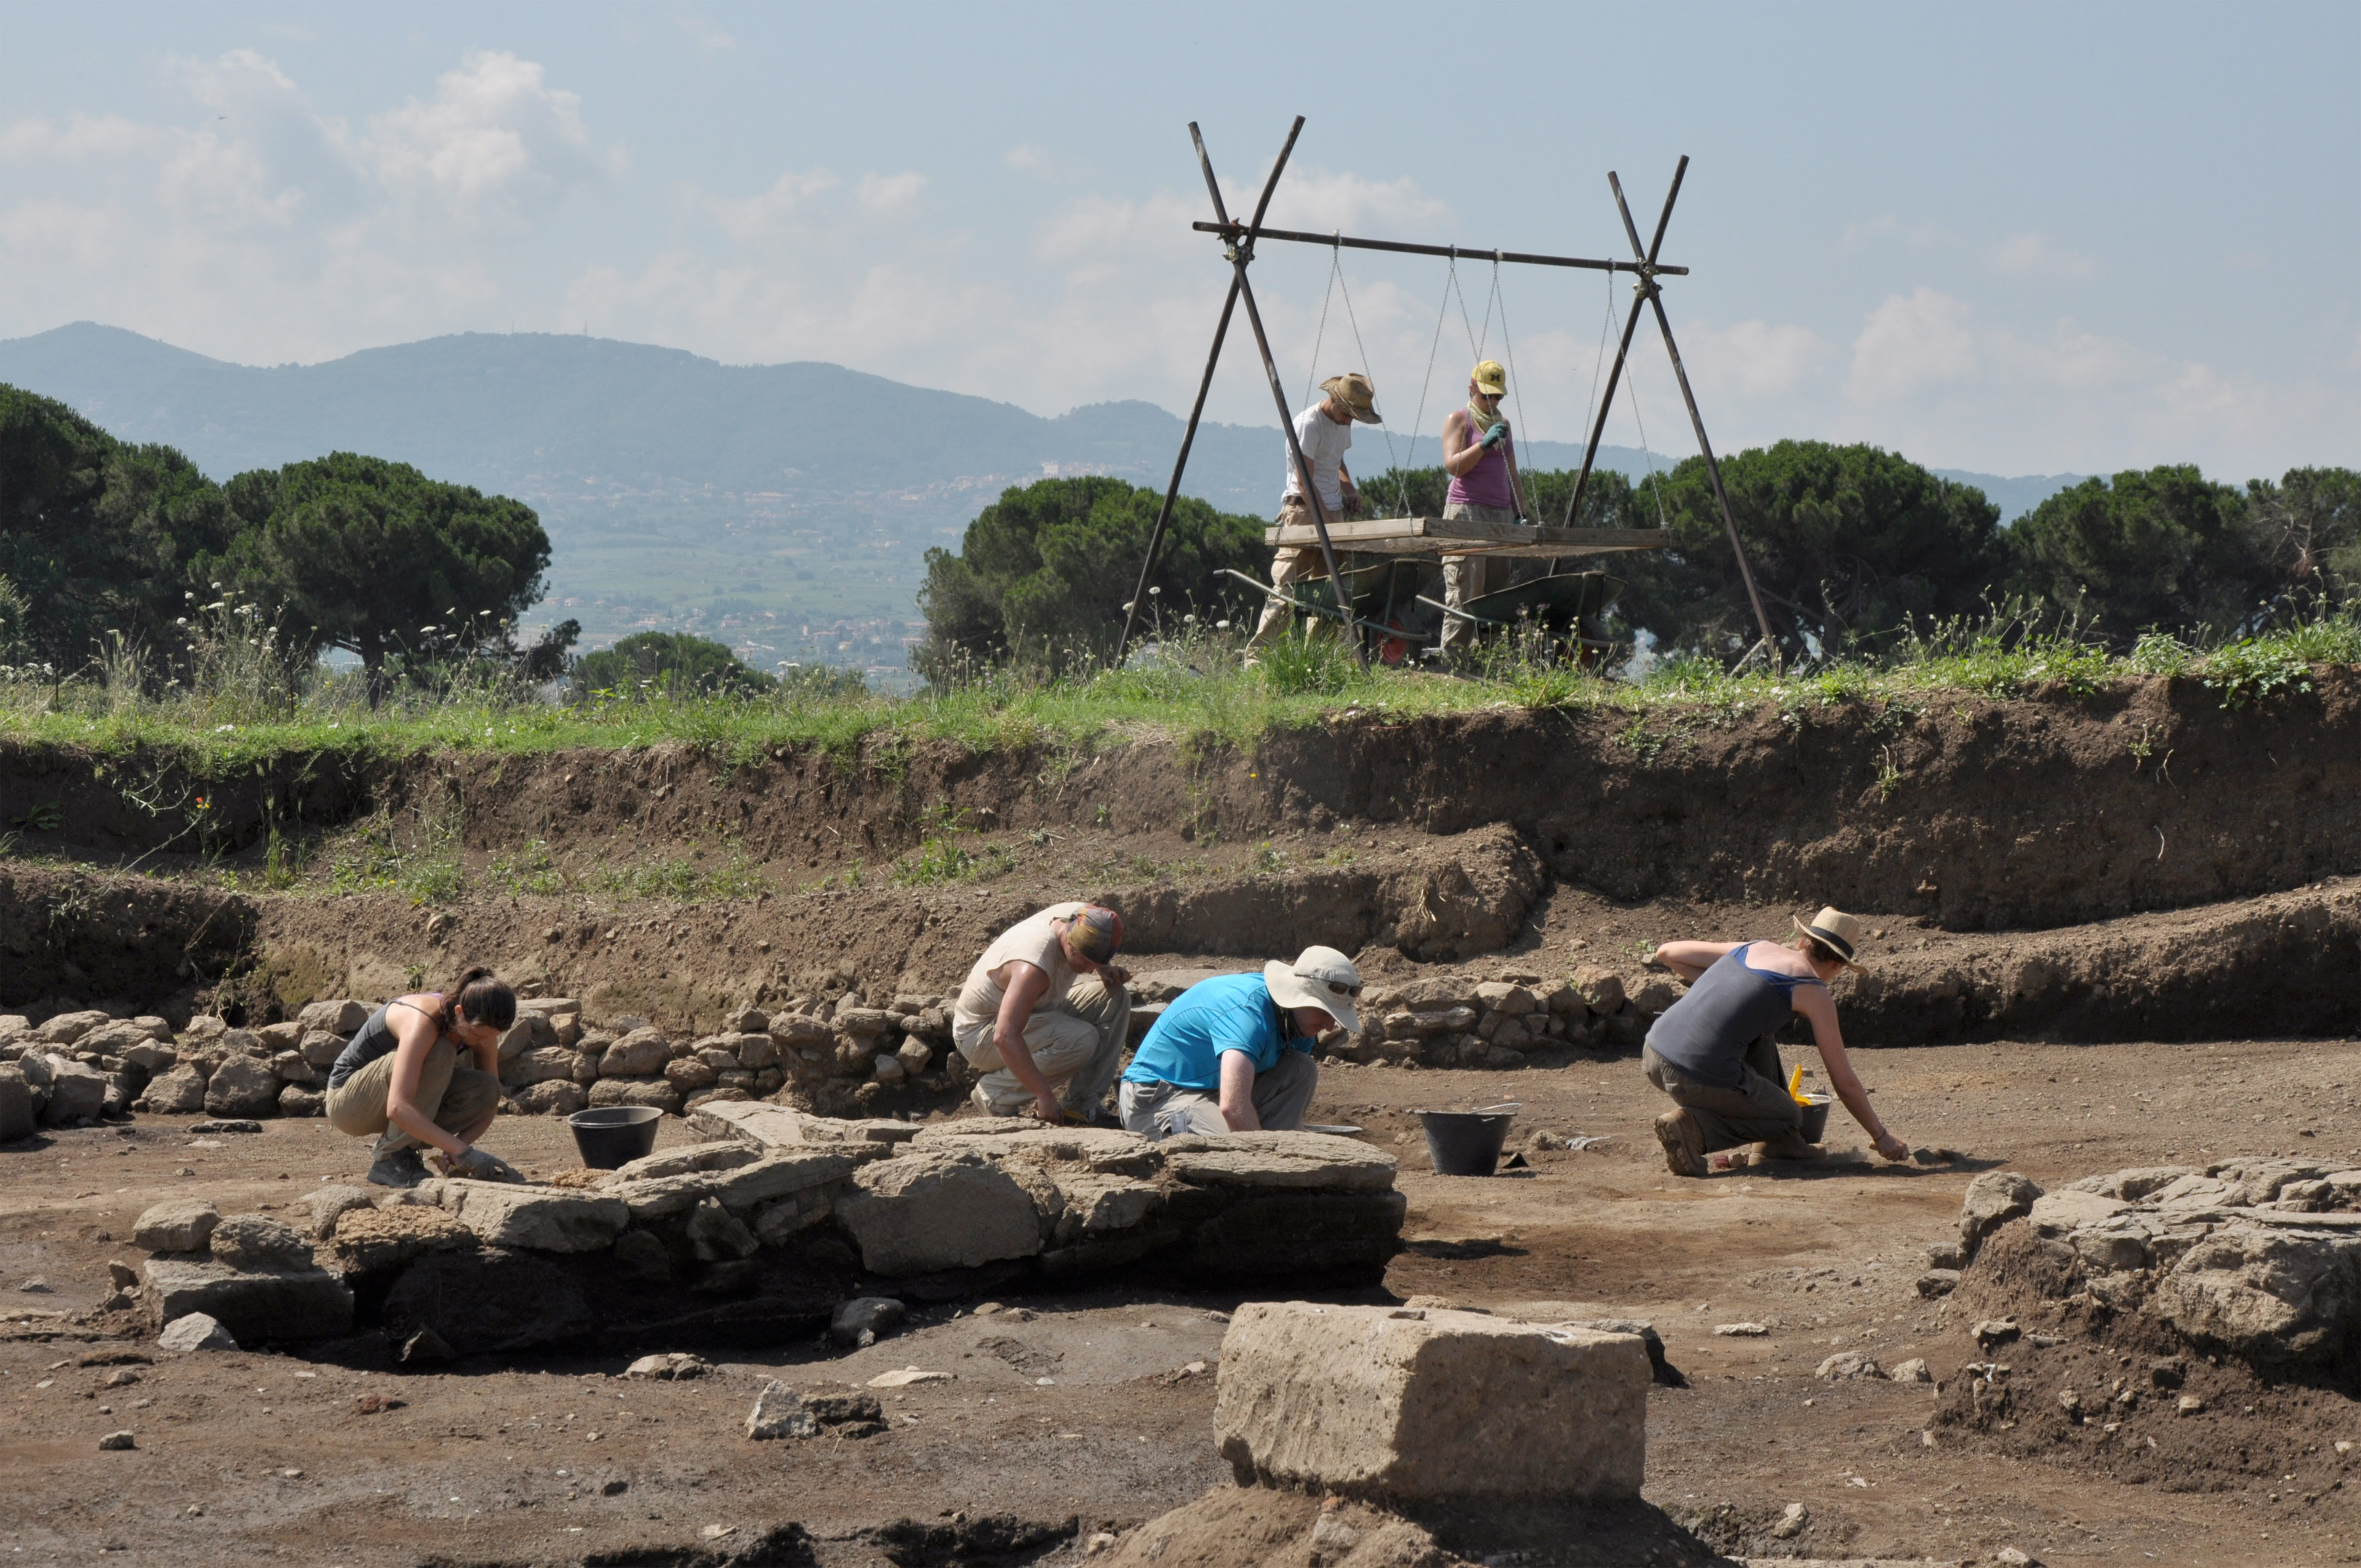 A team of 60 researchers including undergraduates and graduate students from several universities took part this summer in a major archeological dig at the site of Gabii, just outside Rome. The project, which began in 2009, is the largest American dig in Italy in the past 50 years.